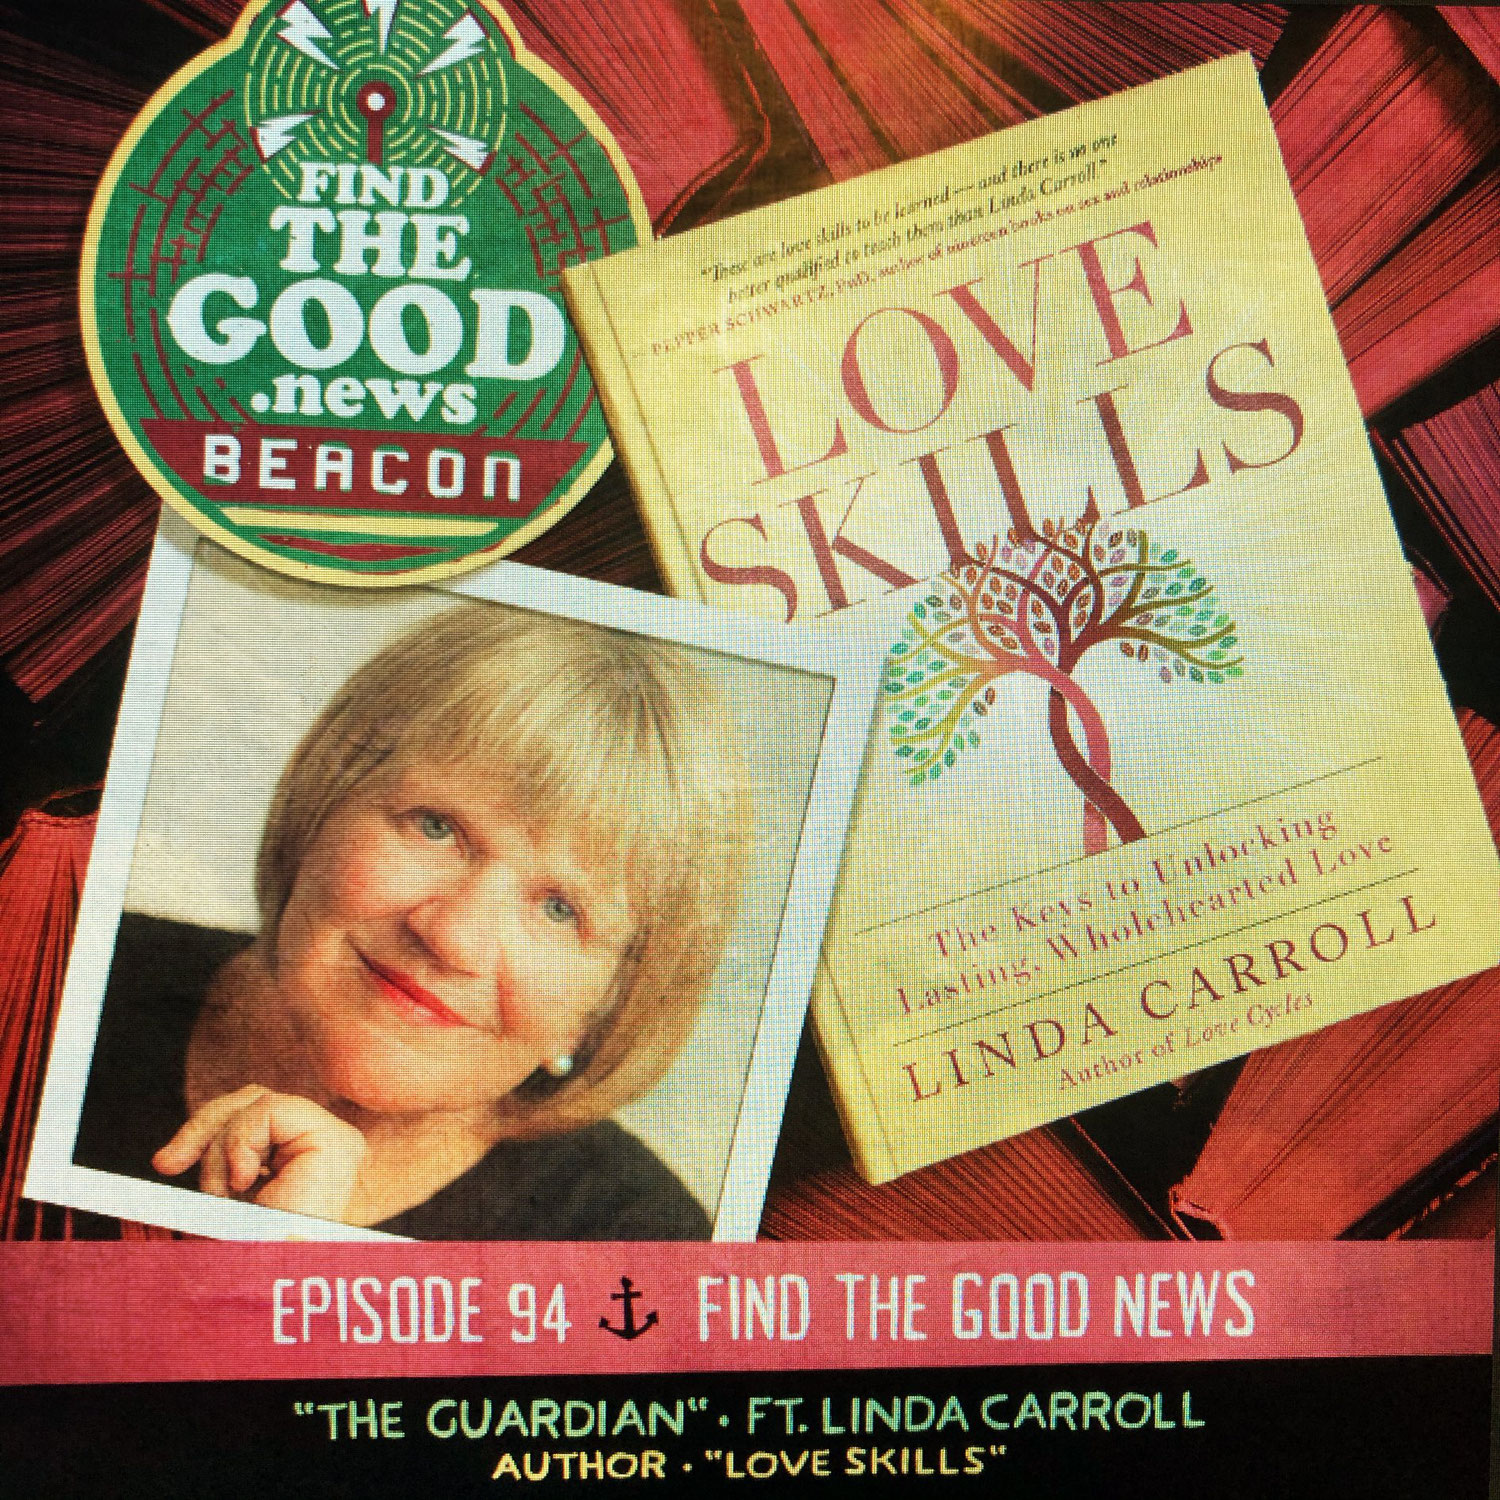 Episode 94—The Guardian—featuring Linda Carroll, author of Love Skills: The Keys to Unlocking Lasting, Wholehearted Love